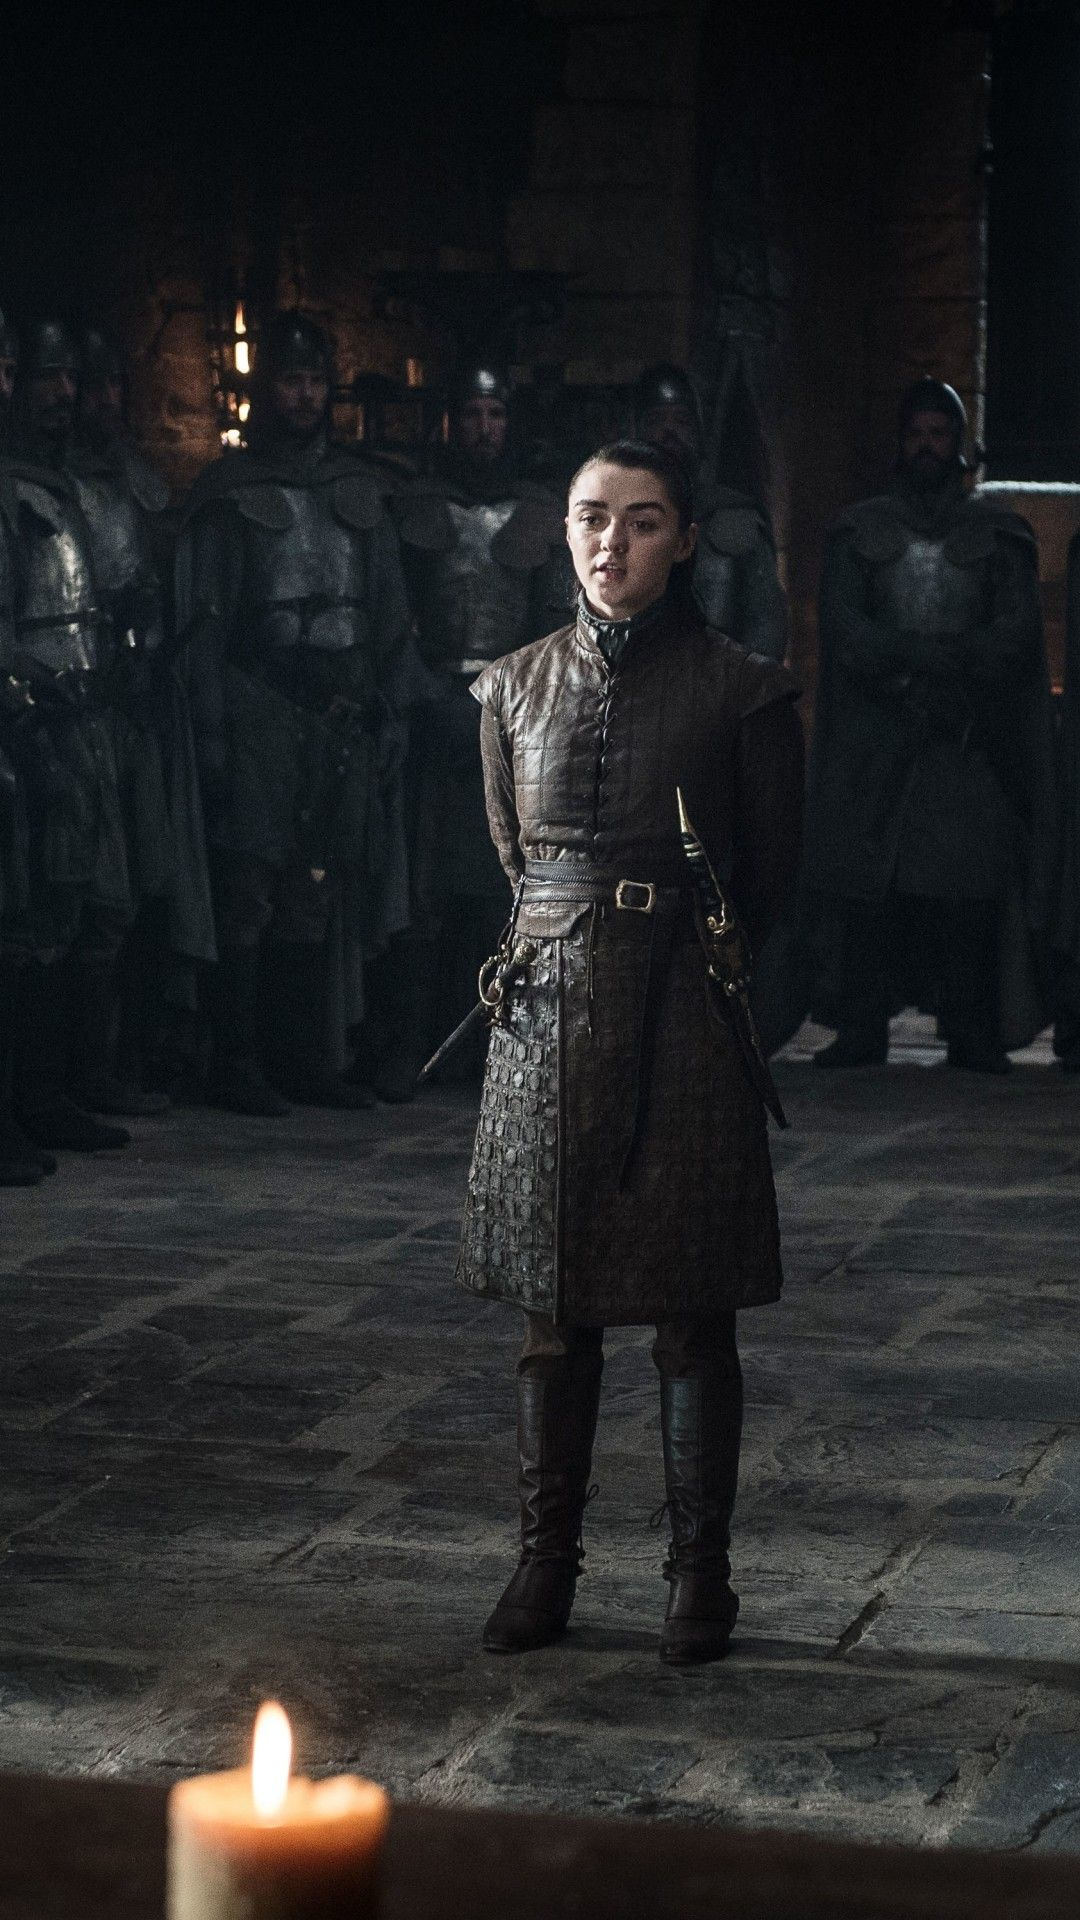 Pin by Tracy Grubbs on Game Of Thrones Arya stark, Arya